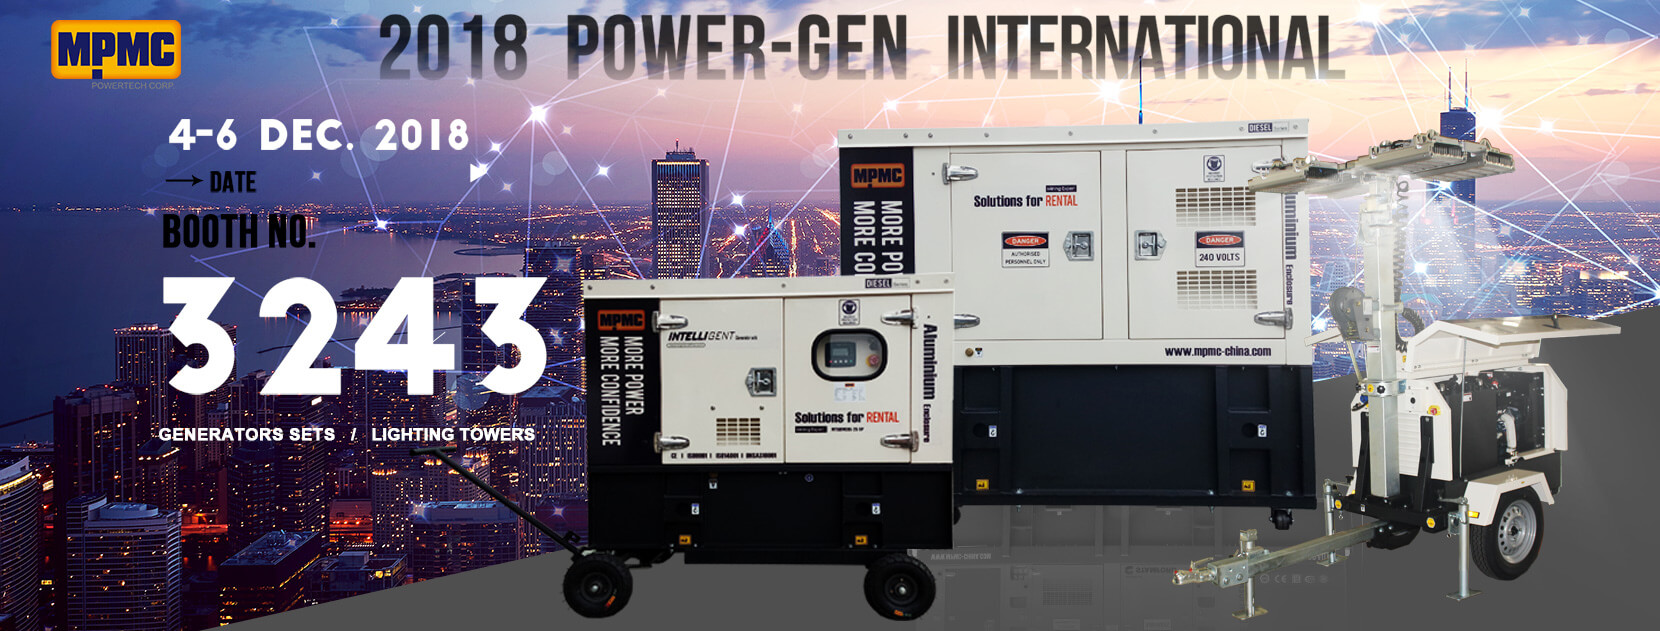 2018 POWER-GEN INTERNATION